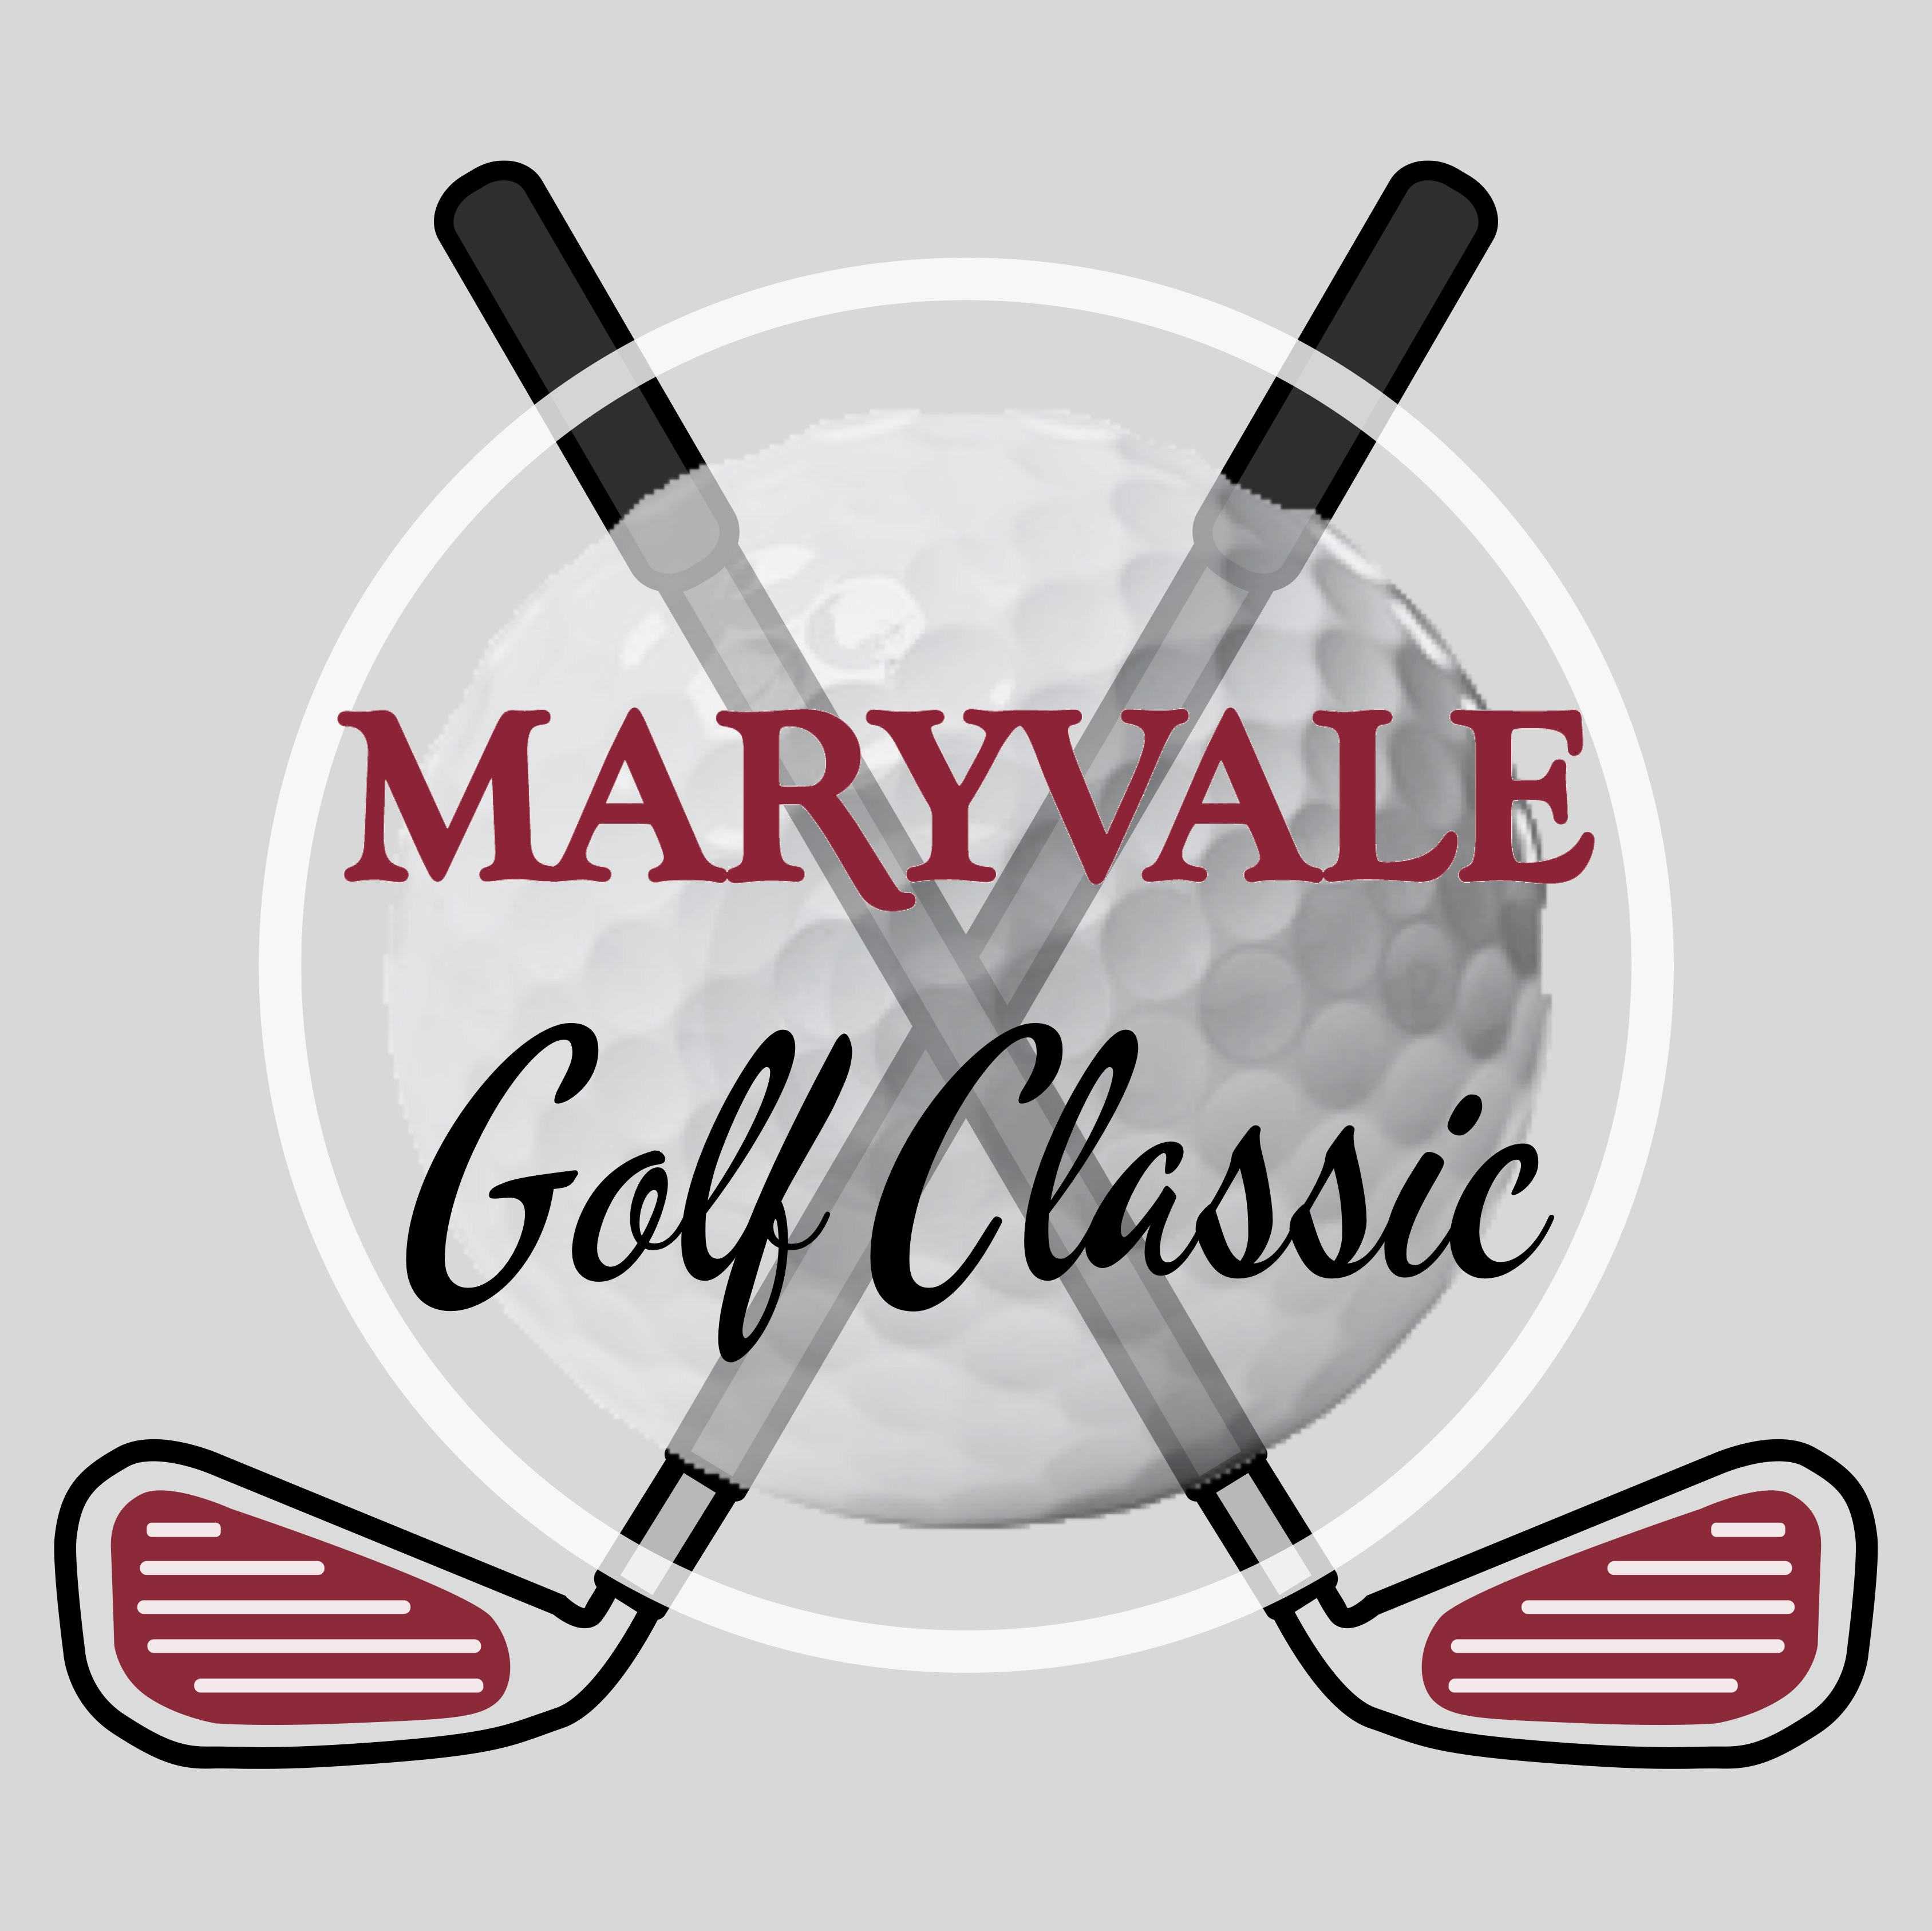 29th Annual Maryvale Golf Classic